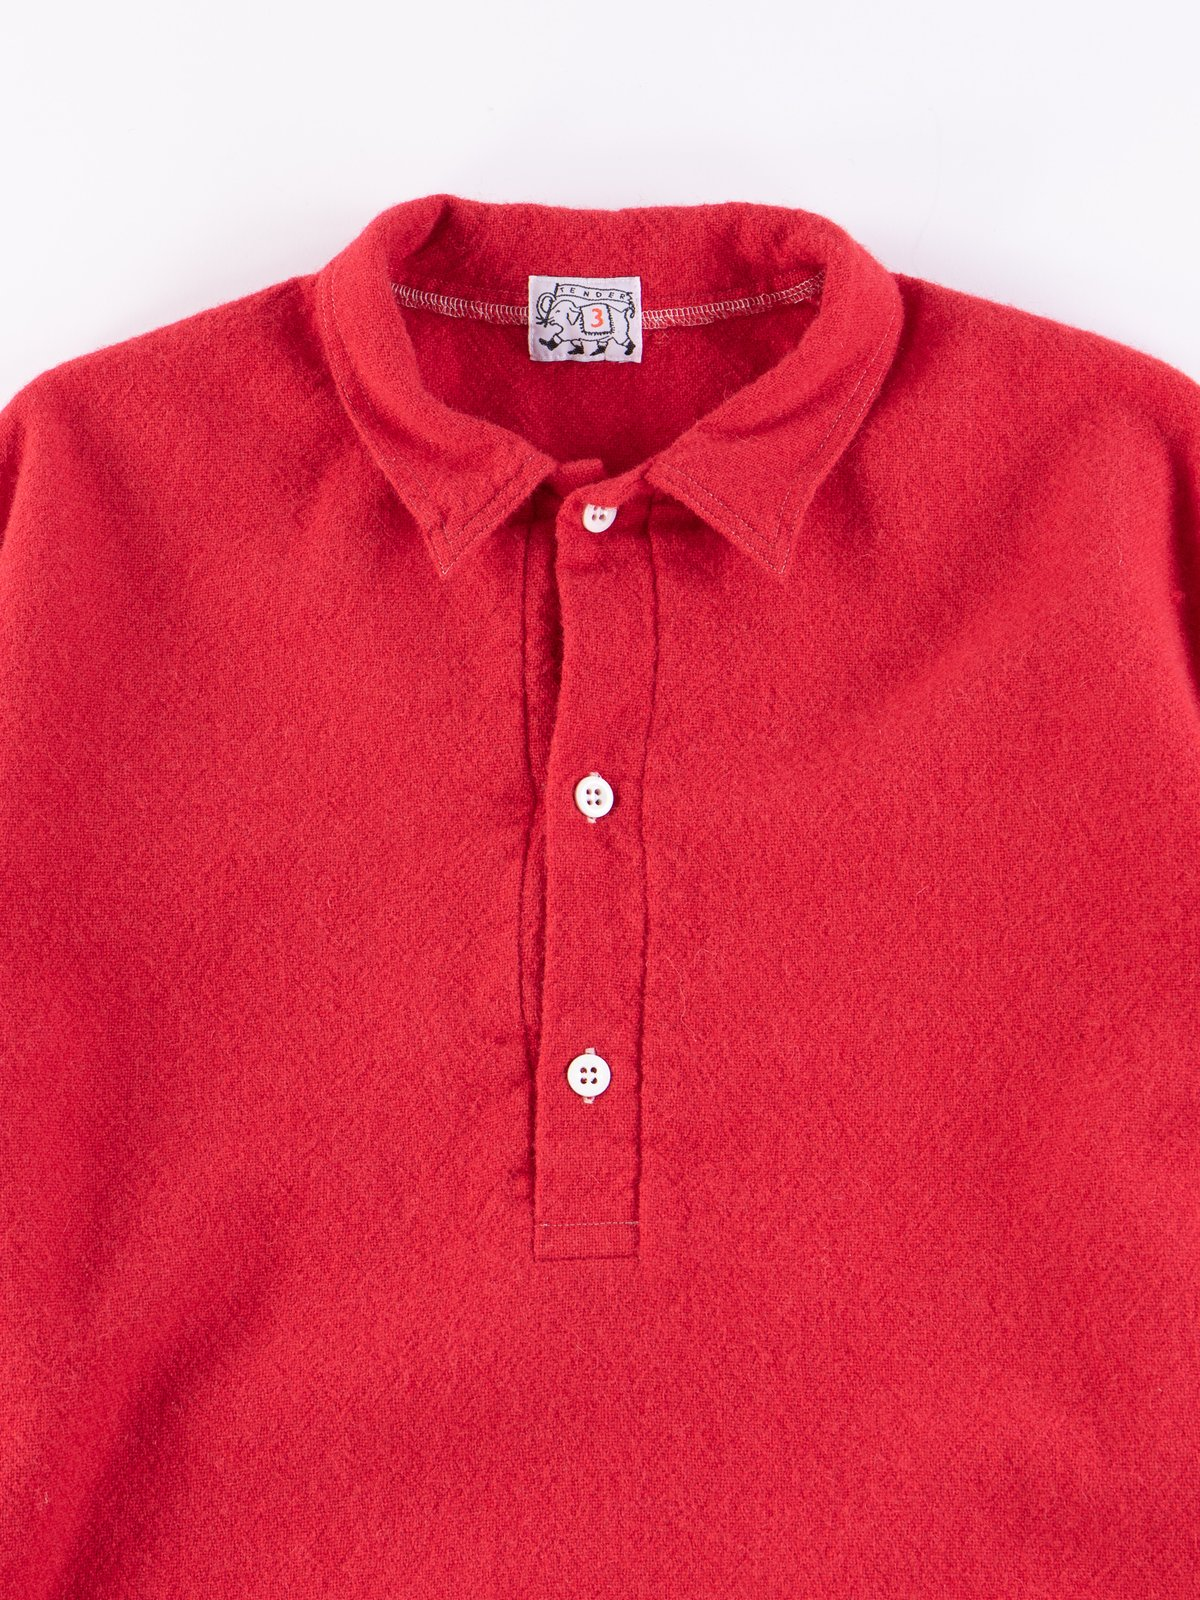 Scarlet Weavers Stock Pullover Tail Shirt - Image 3